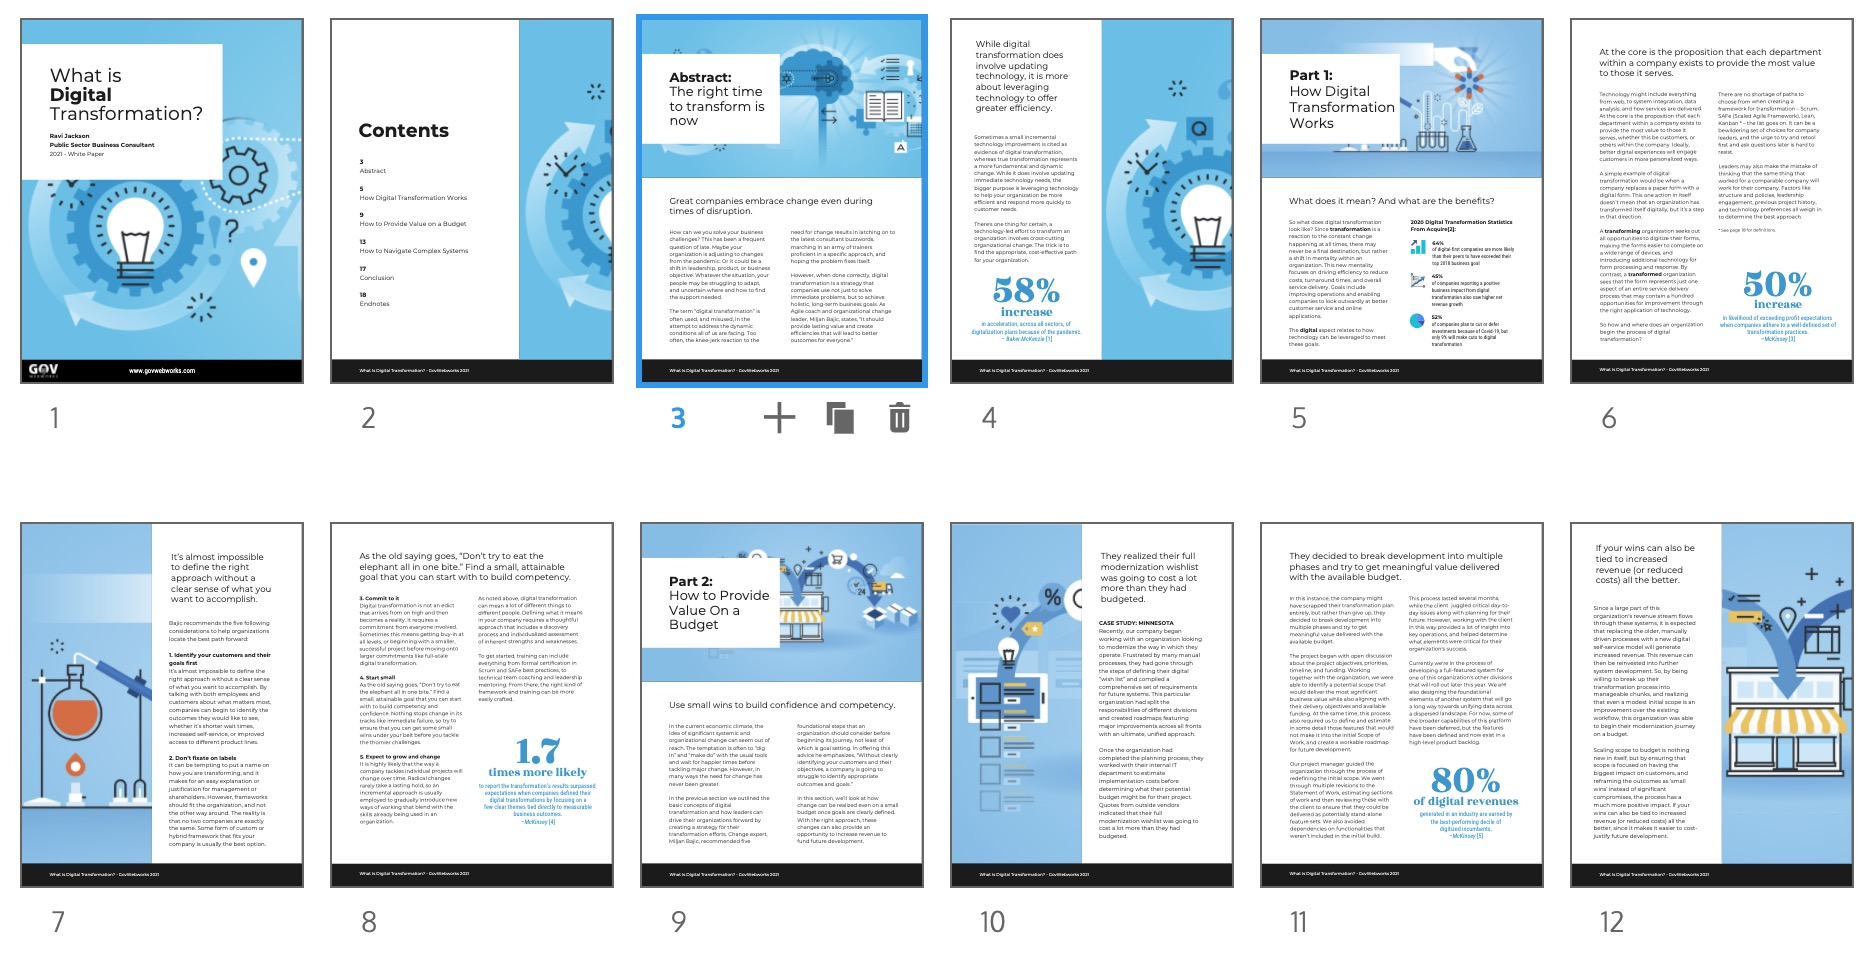 What Is Digital Transformation? - White Paper